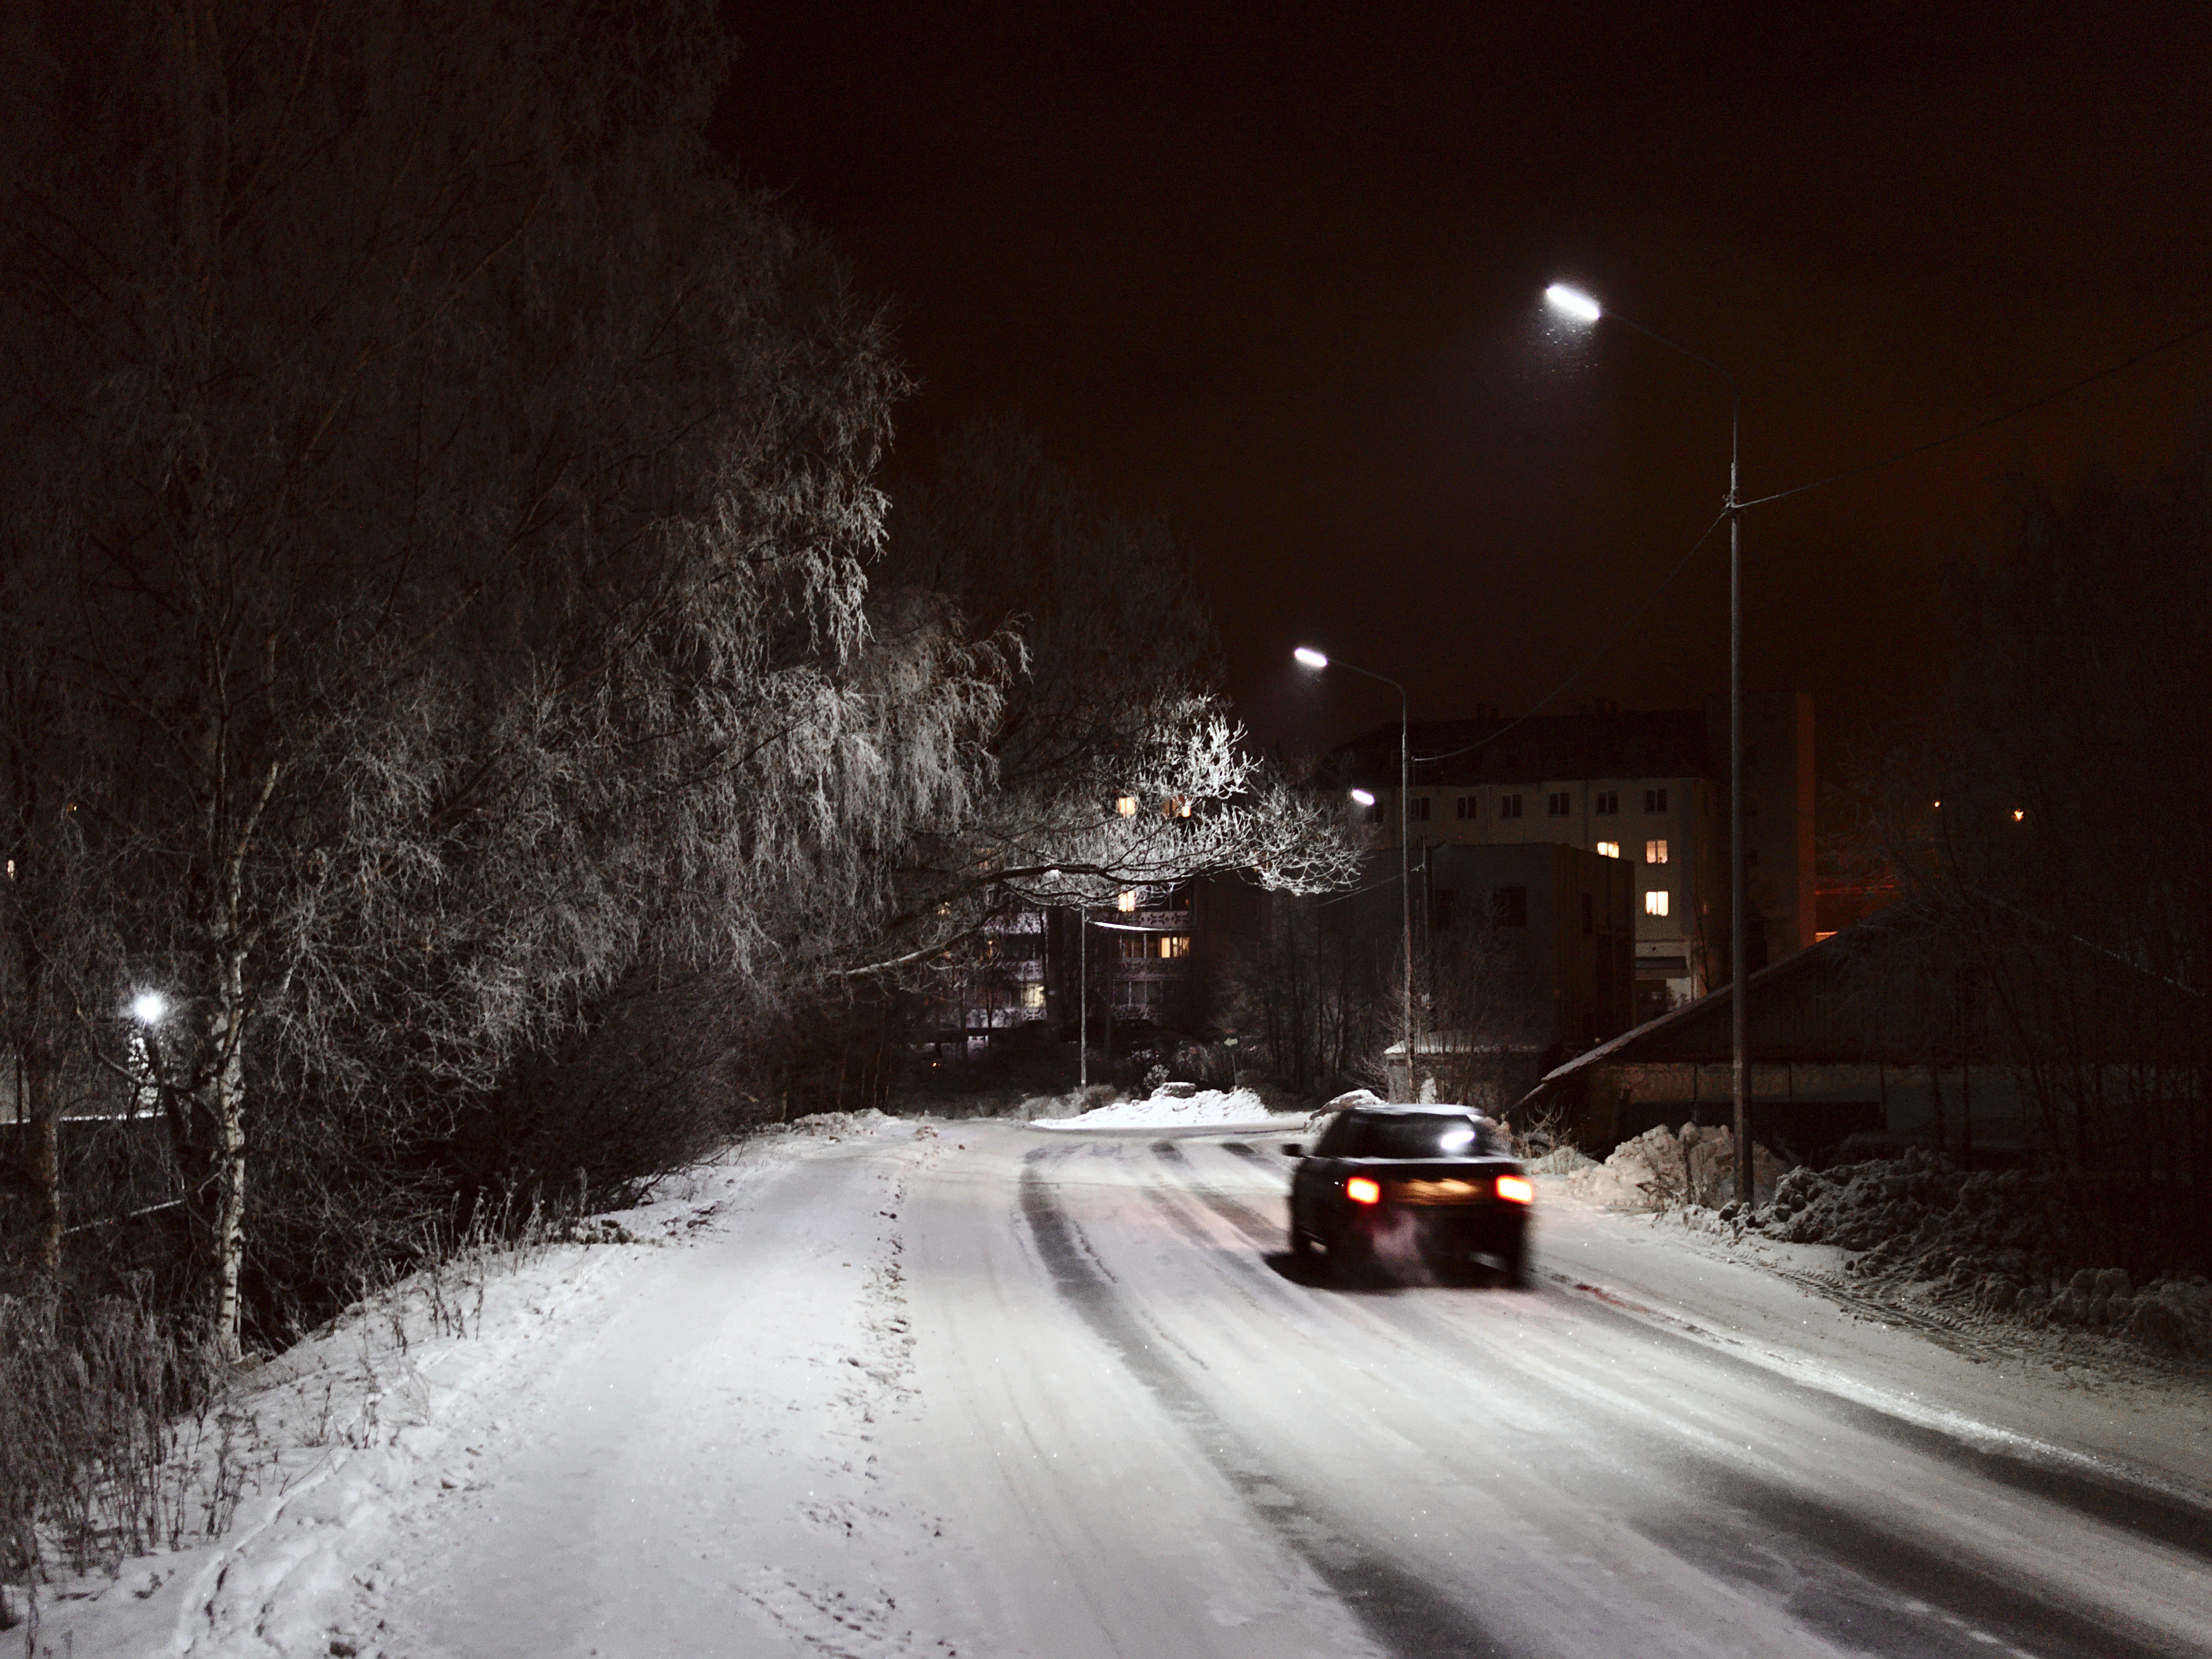 Car With Road >> Winter night road